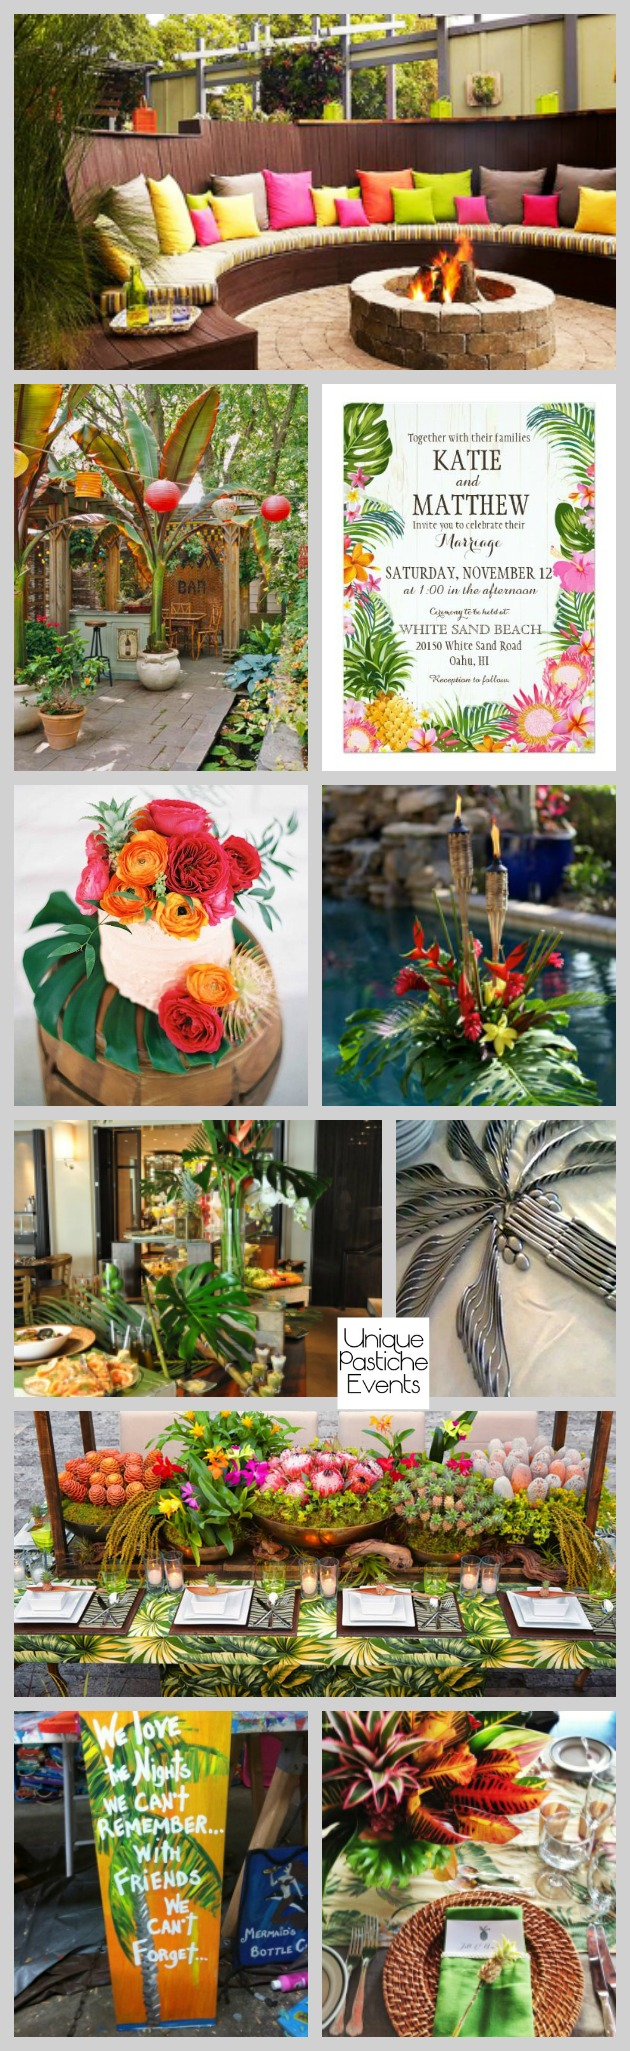 Tropical Backyard Engagement Party